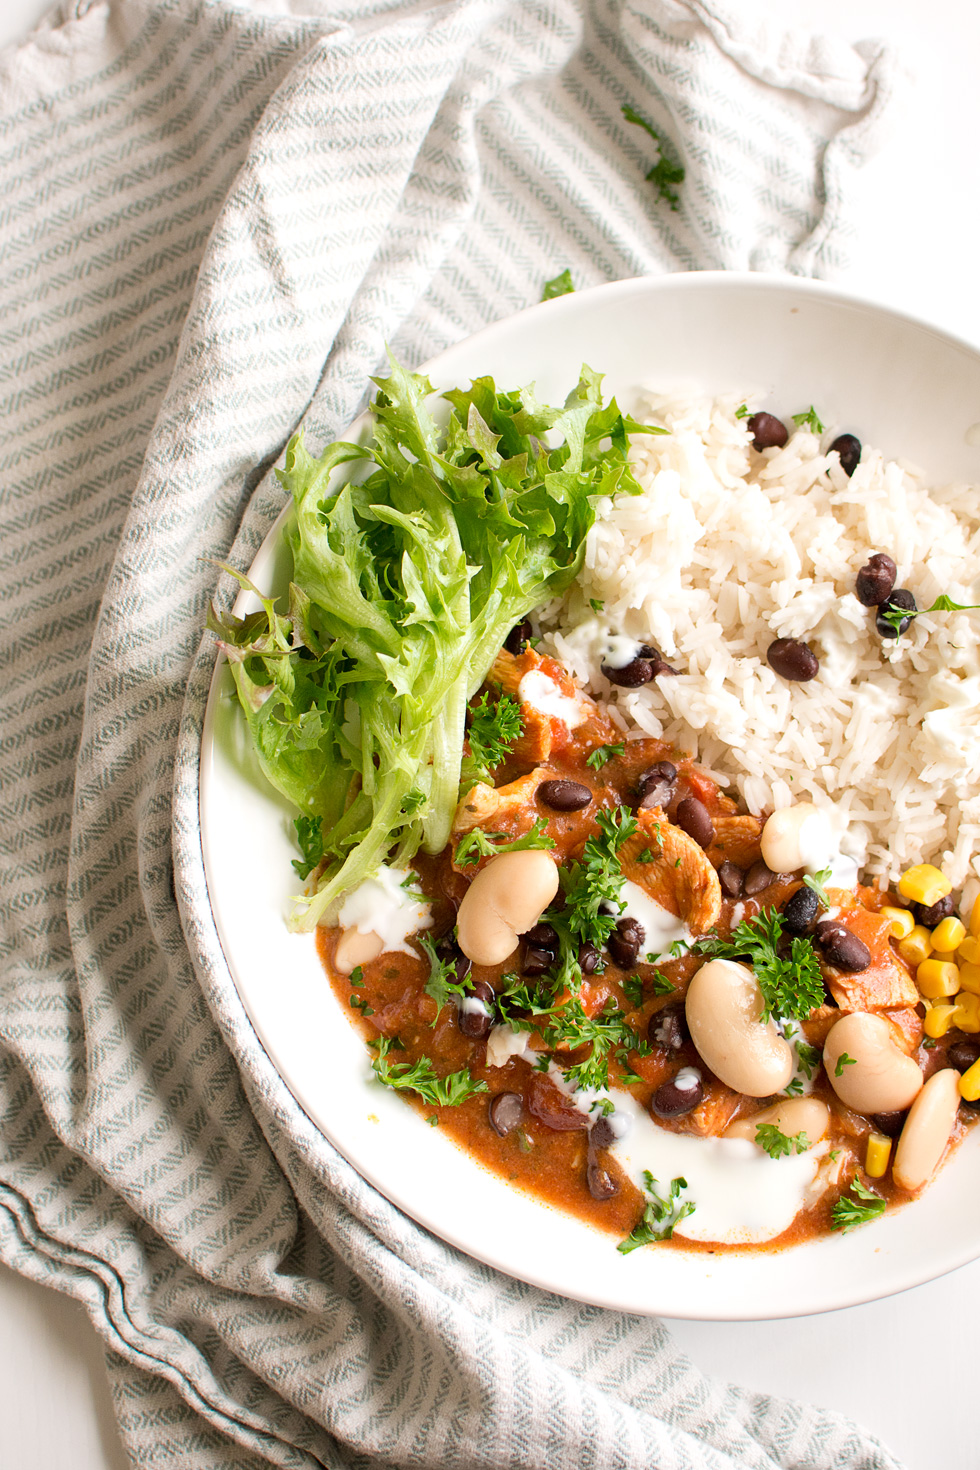 Chili con carne med kyckling